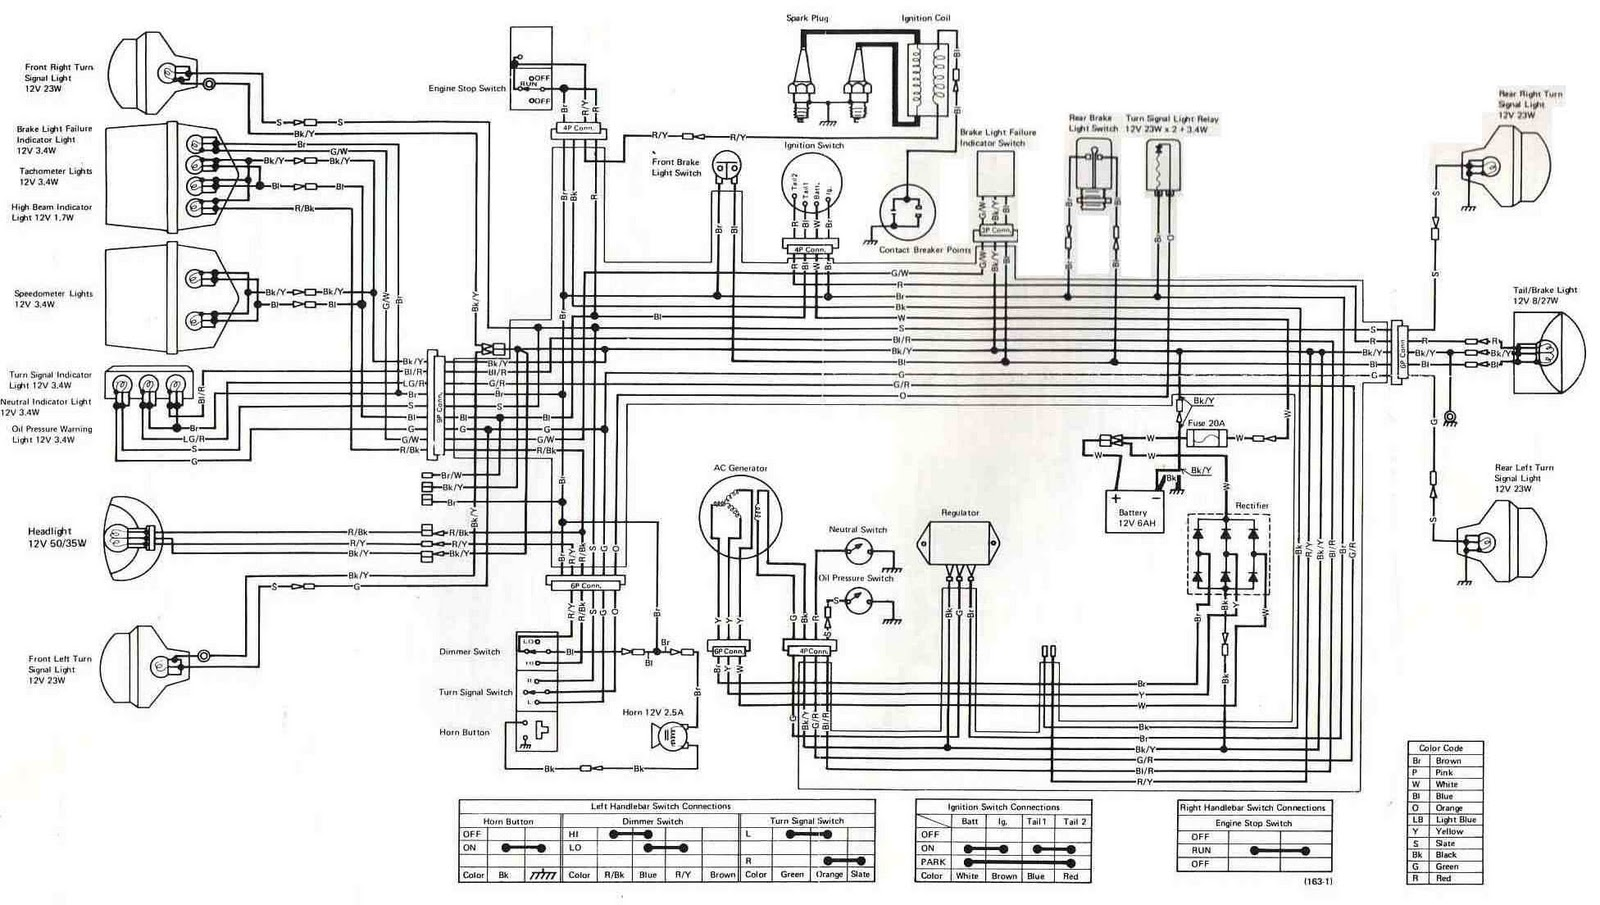 Kawasaki Kz Electrical Wiring Diagram additionally Toyota Forklift Alternator Wiring Diagram New Omc Alternator Wiring Diagram   Alternator Wiring Diagram Omc Cobra Of Toyota Forklift Alternator Wiring Diagram X as well Kawasaki Kvf C Prairie X Usa Canada Battery Case Mediumkae F D together with Klf Wiring Diagram Kawasaki Bayou Wiring Diagram Pertaining To Kawasaki Bayou Engine Diagram in addition S L. on kawasaki prairie 300 parts diagram